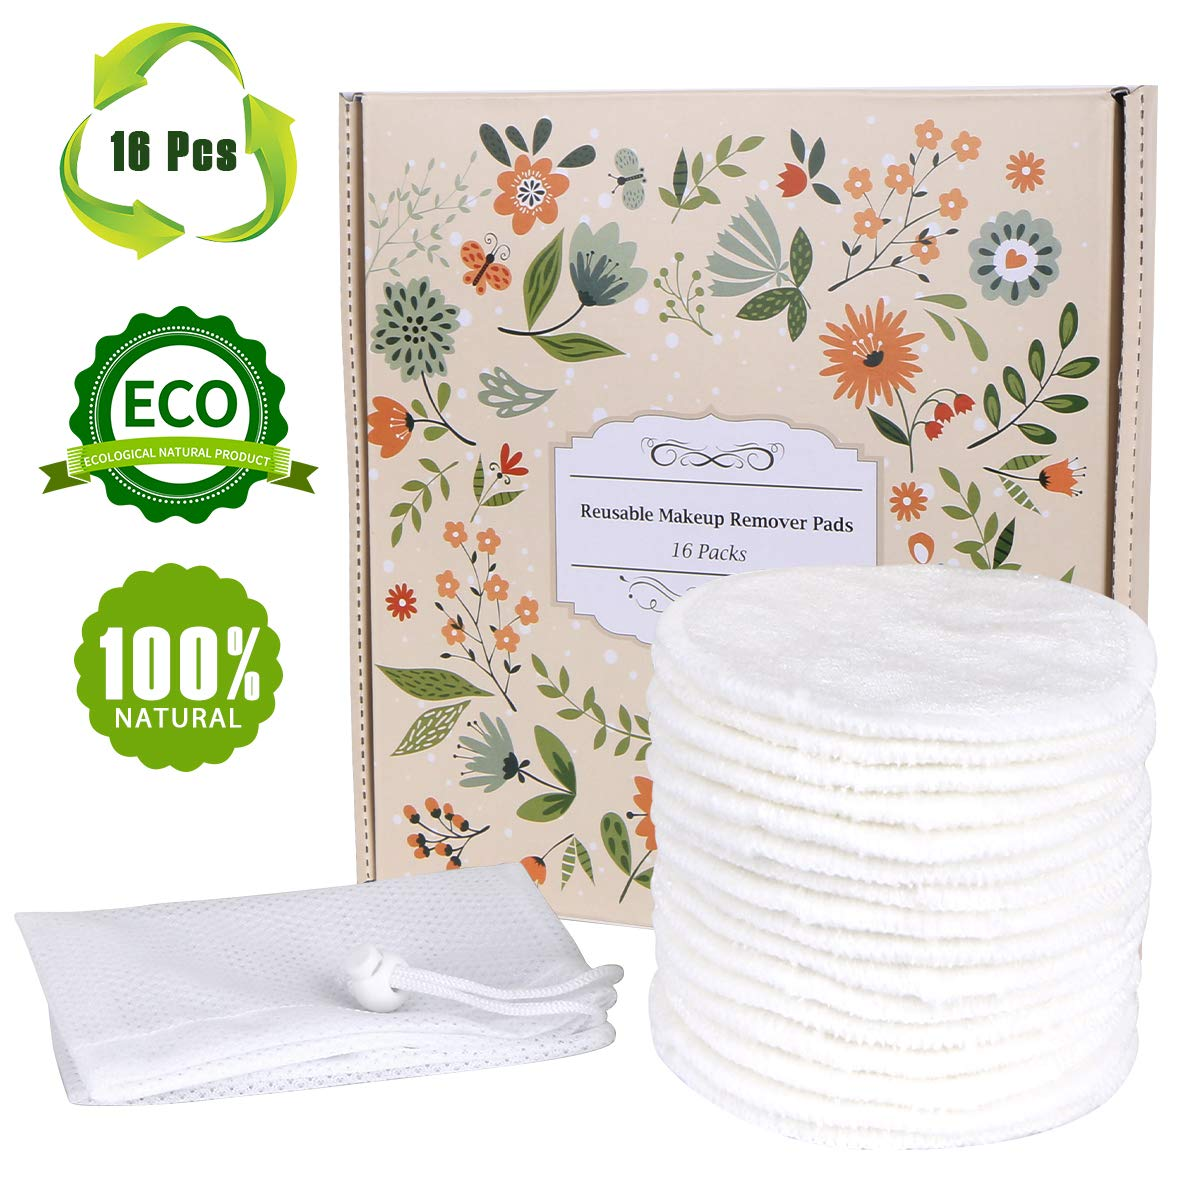 Reusable Makeup Remover Pads 16 Packs, TOPOINT Organic Bamboo Cotton Rounds,Reusable Cotton Pads for Face Wipes with Laundry Bag by TOPOINT